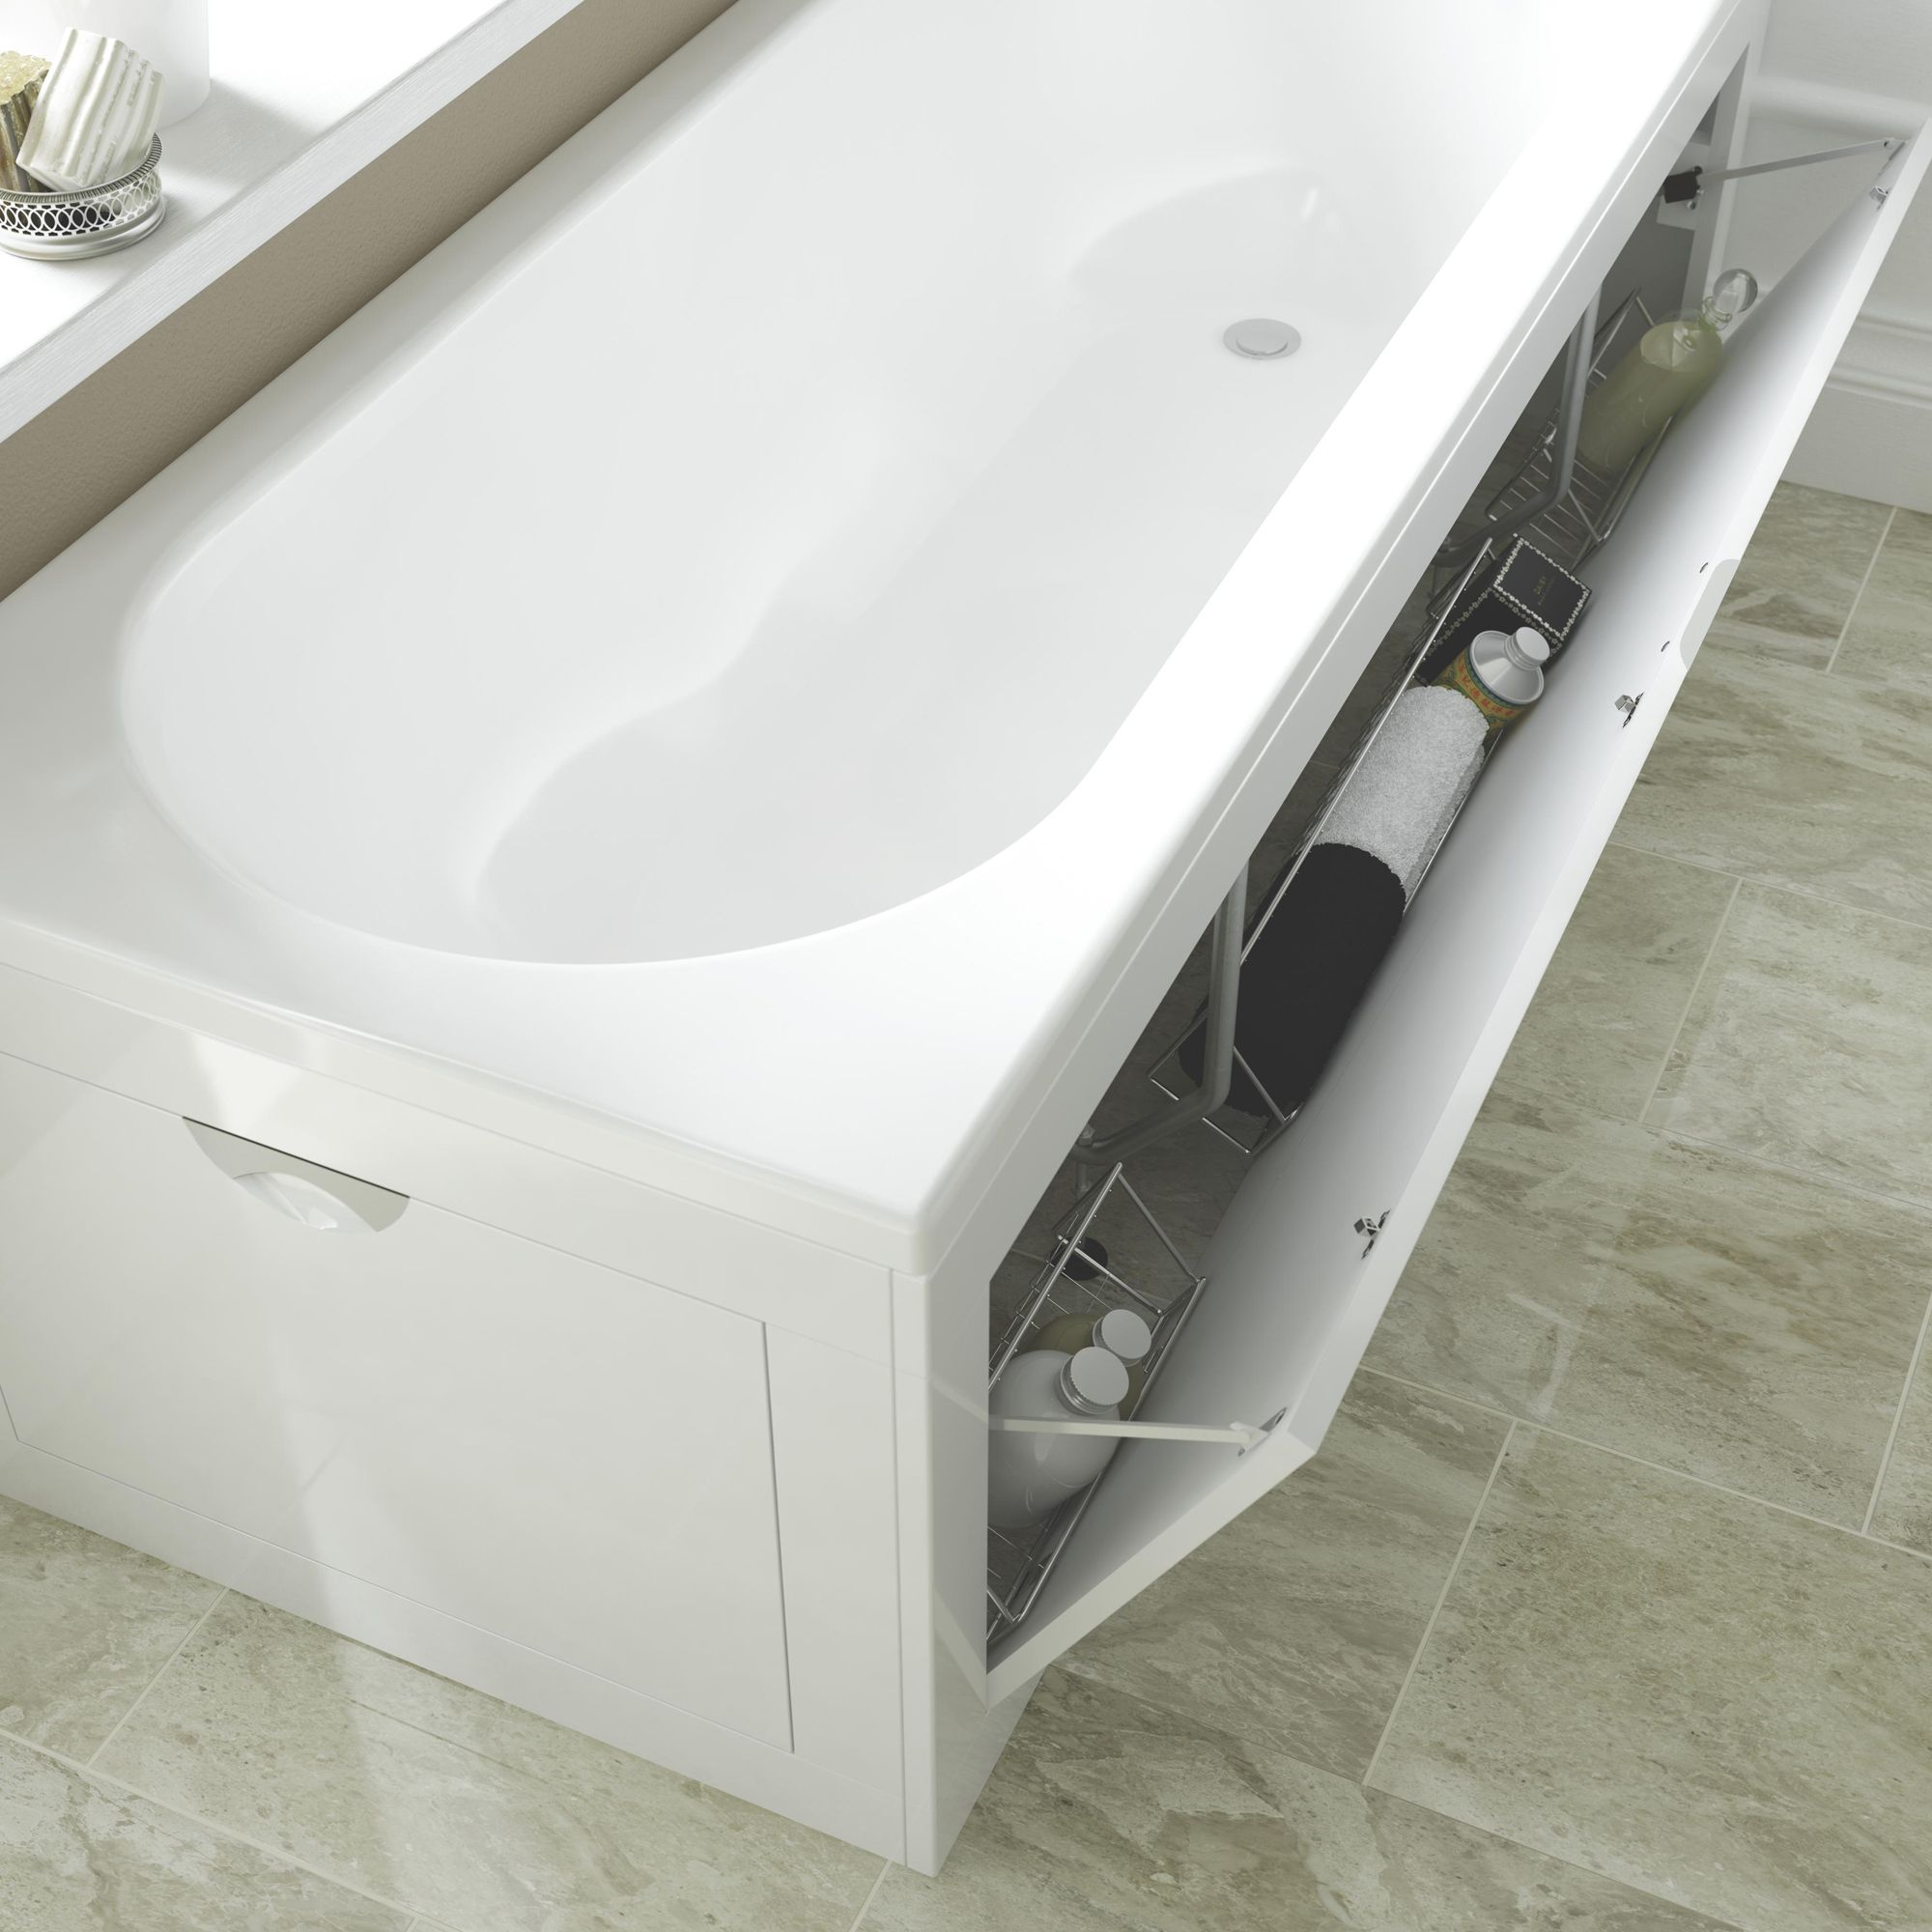 Cooke lewis gloss white bath front panel departments for B q bathroom accessories